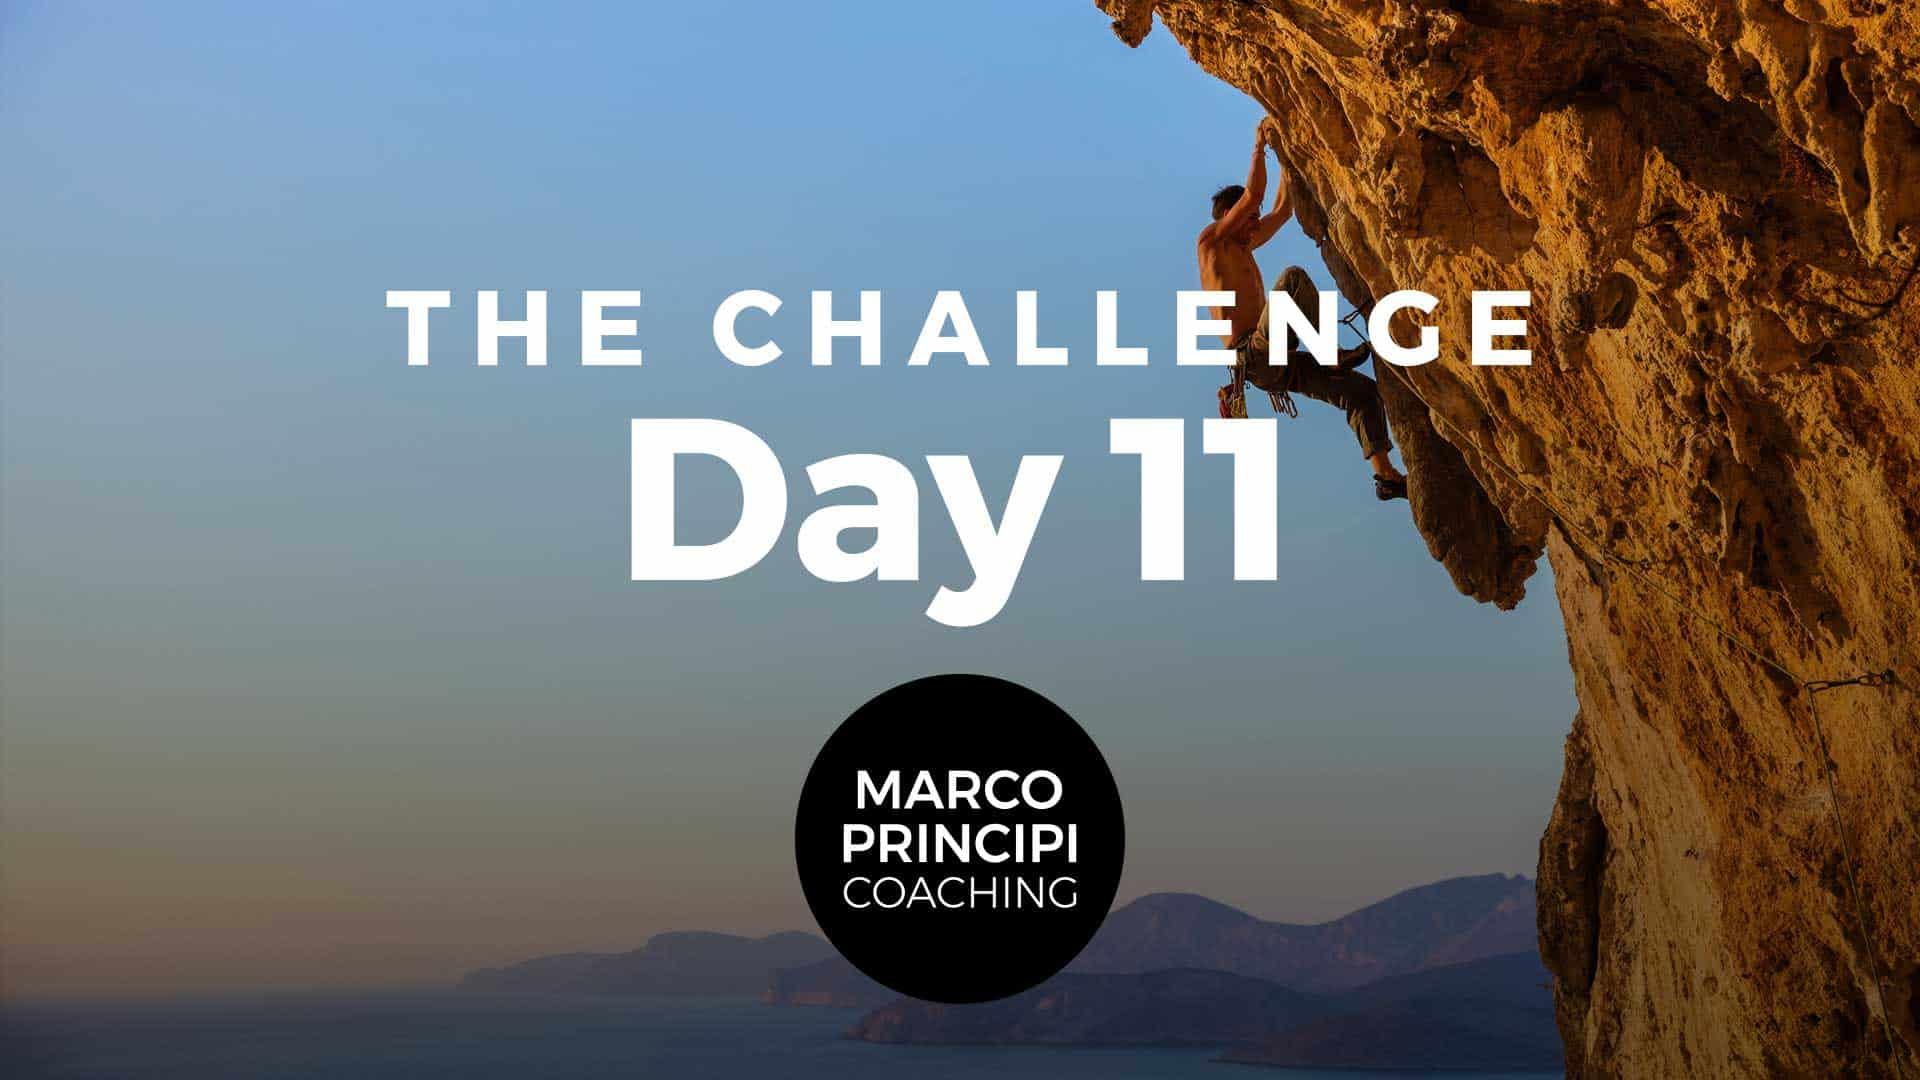 Marco Principi YT Cover The Challenge Day 011